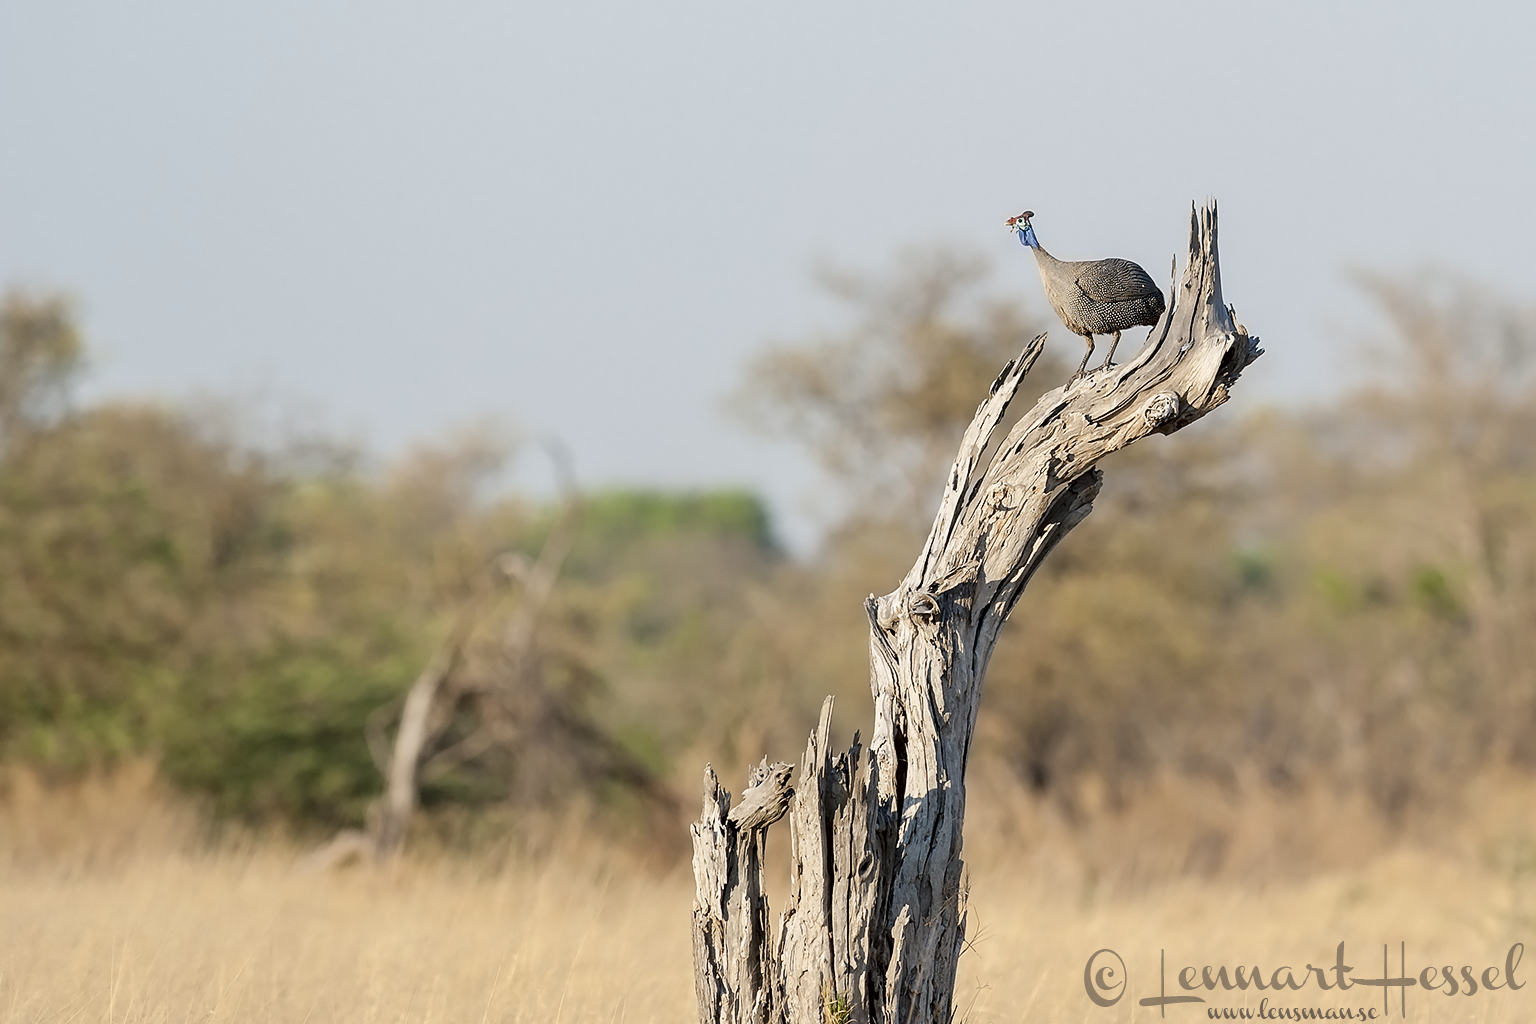 Helmeted Guineafowl in Moremi Game Reserve, Botswana